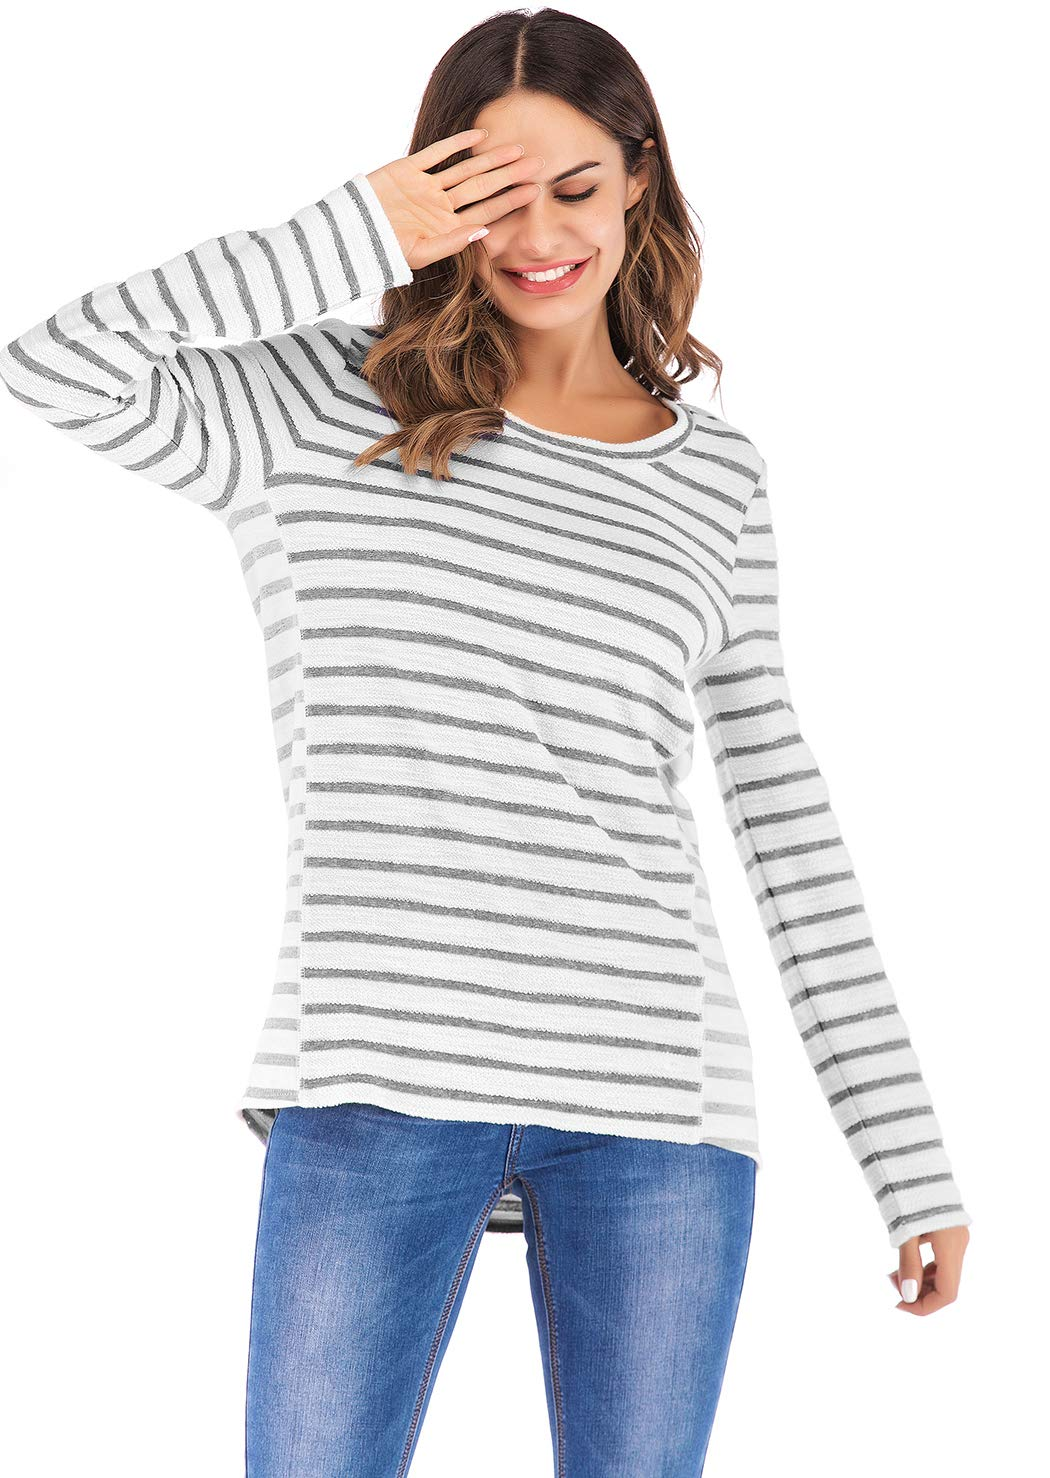 Eanklosco Long Sleeve Striped Shirt Women Casual Gray/Blue White Stripe T-Shirt Loose Round Neck Tunic Tops (Gray+White, 2XL)